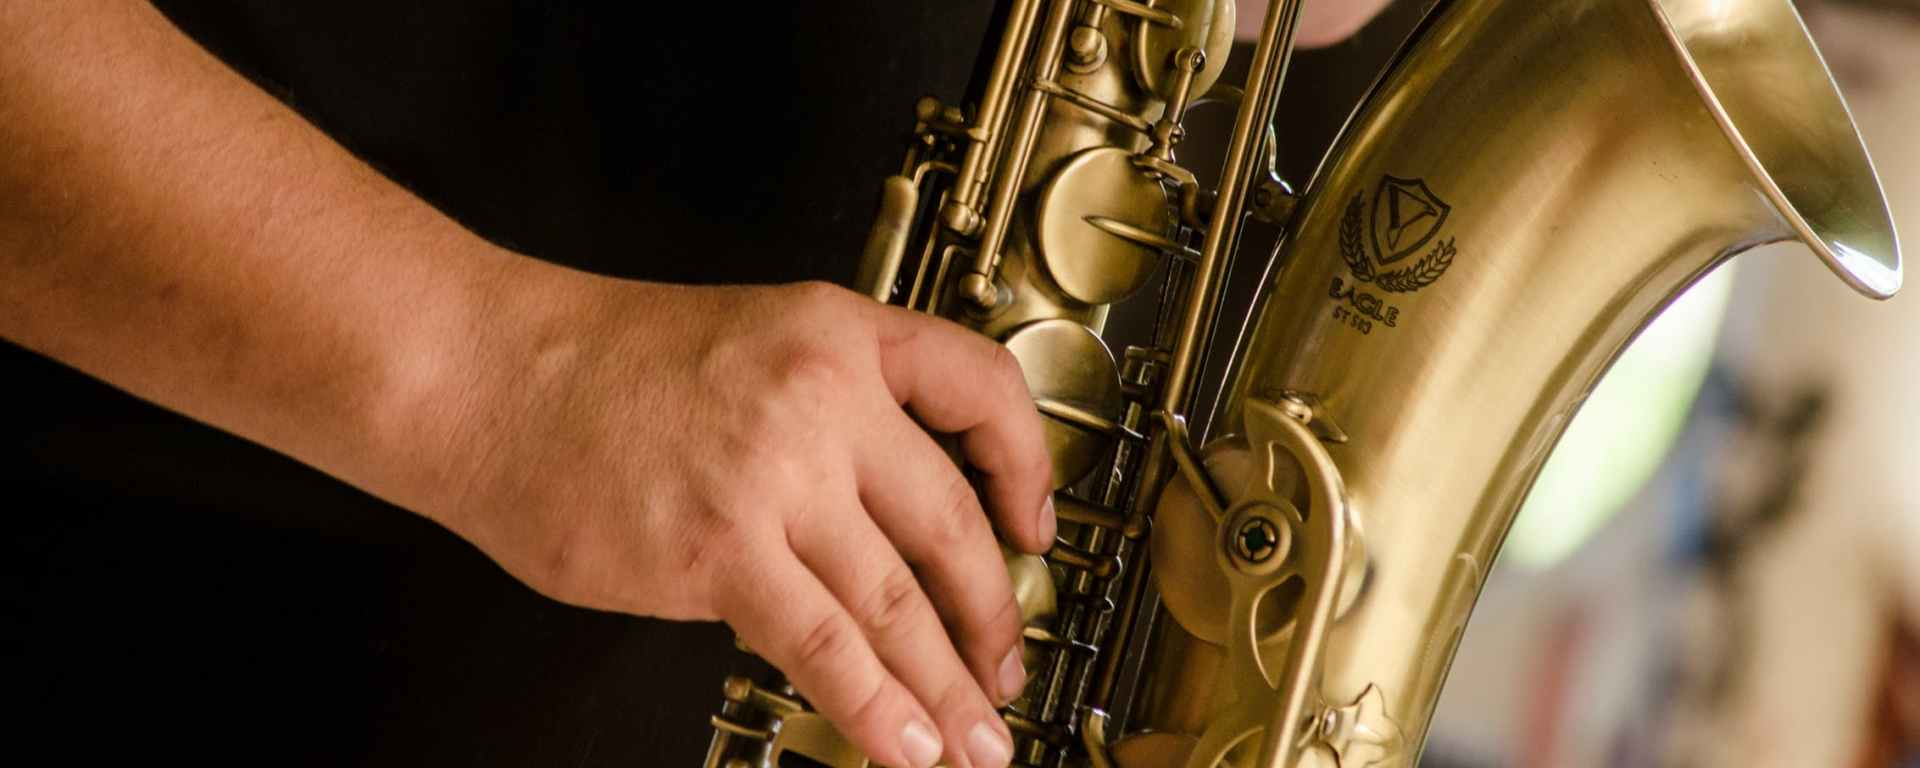 person in black shirt playing brass colored saxophone